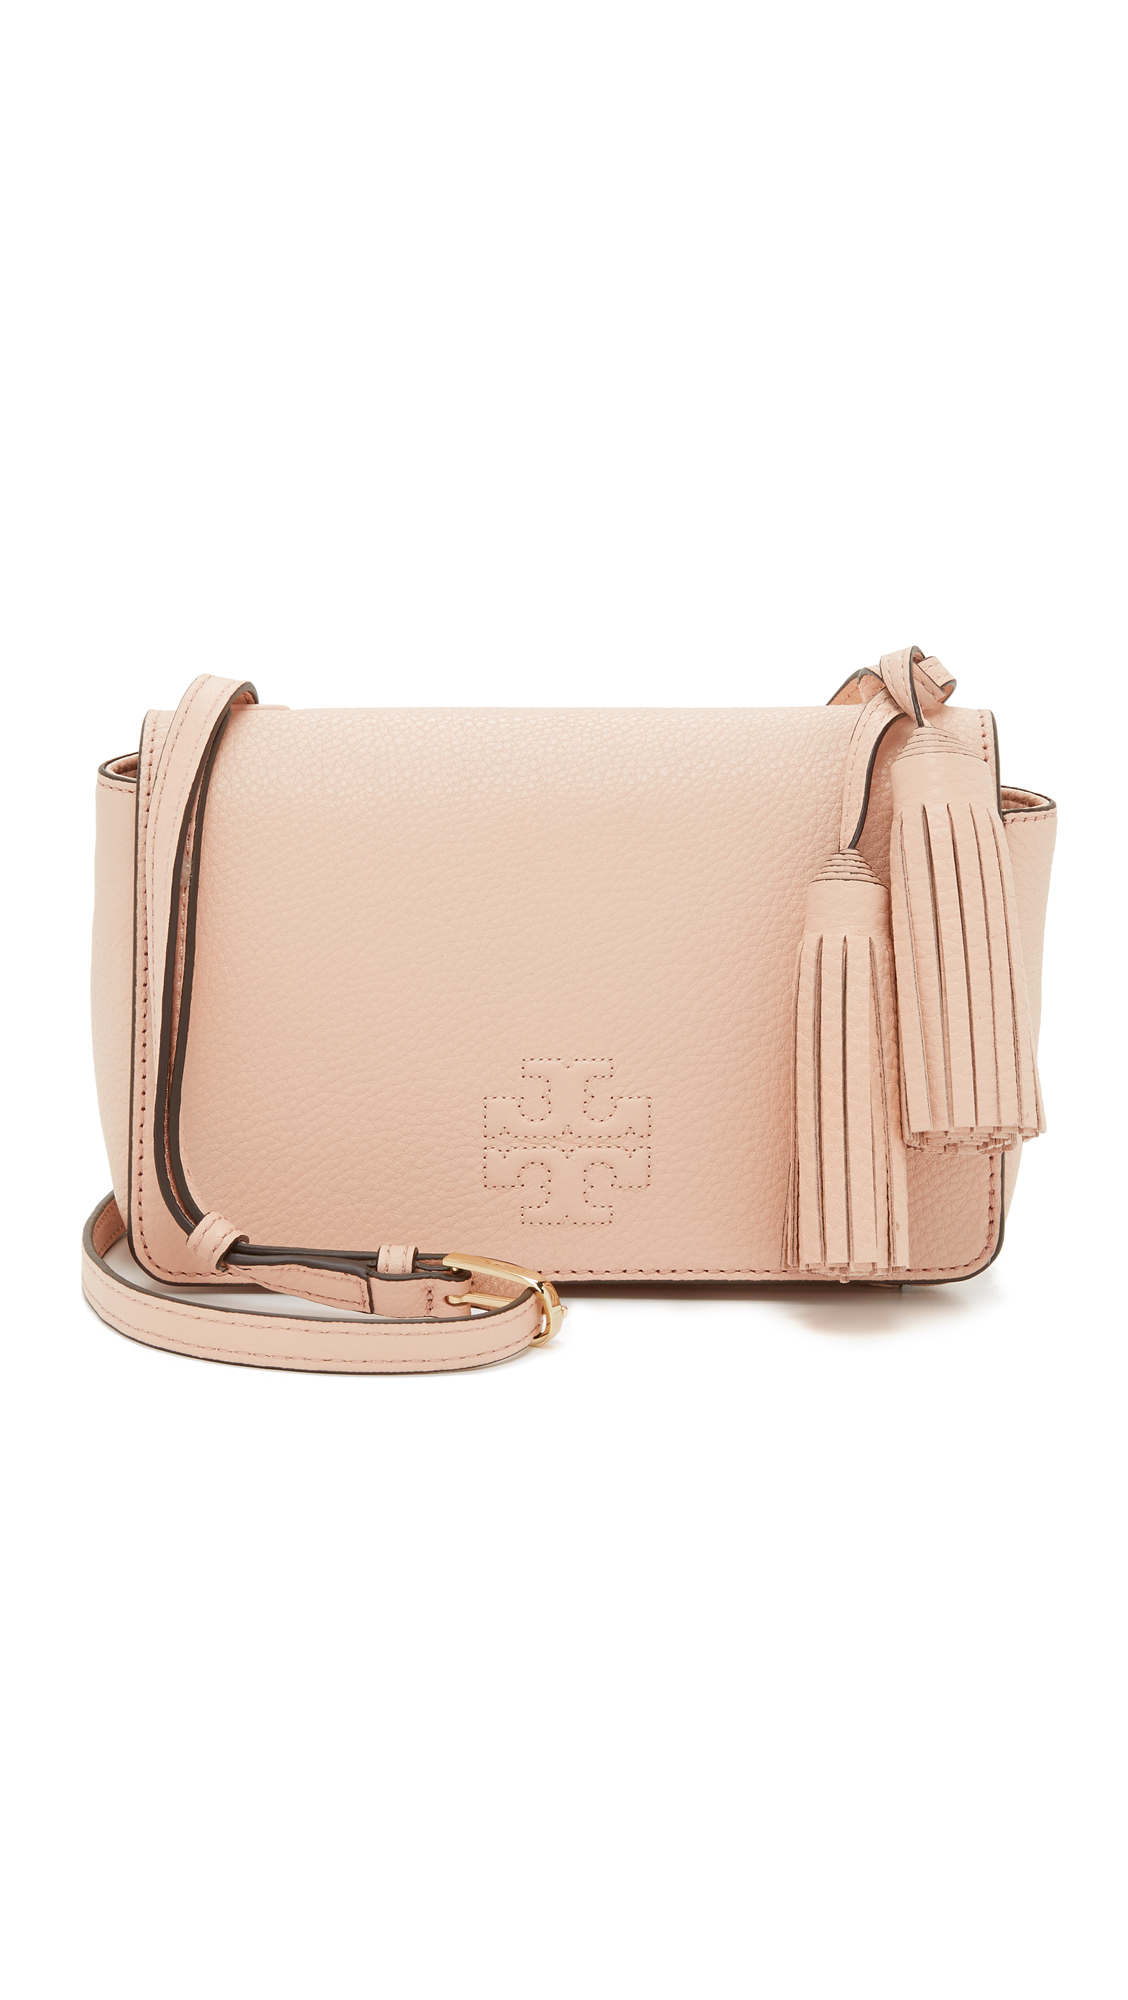 7c206ac0fbcb7 Tory Burch Thea Mini Bag